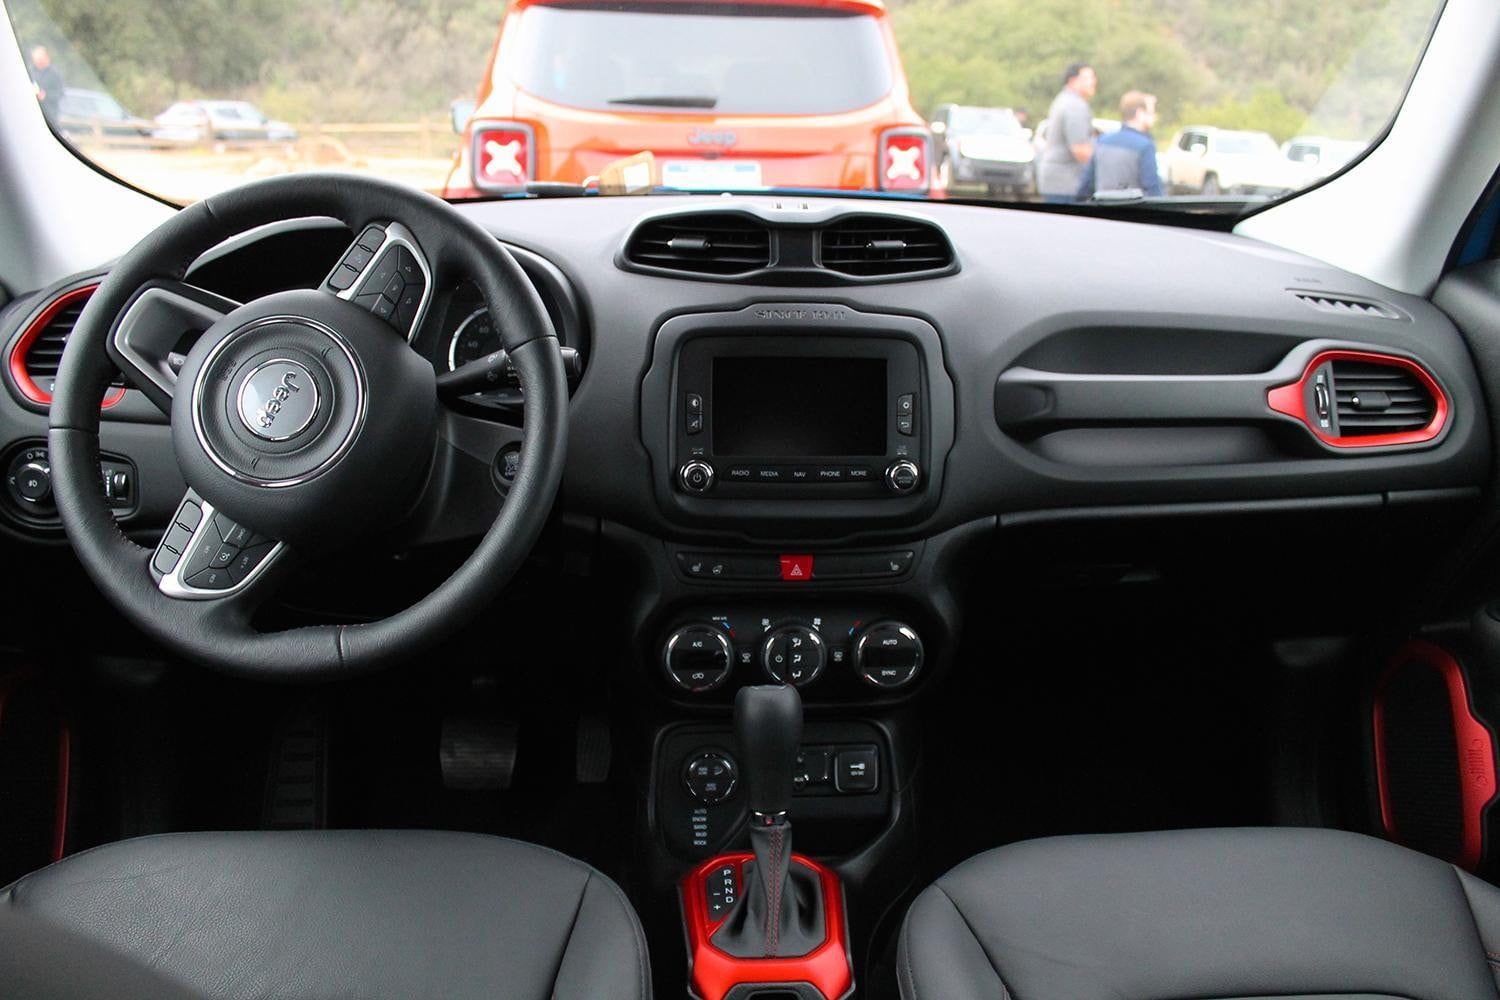 Jeep Renegade sport 2015 interior Jeep renegade, 2015